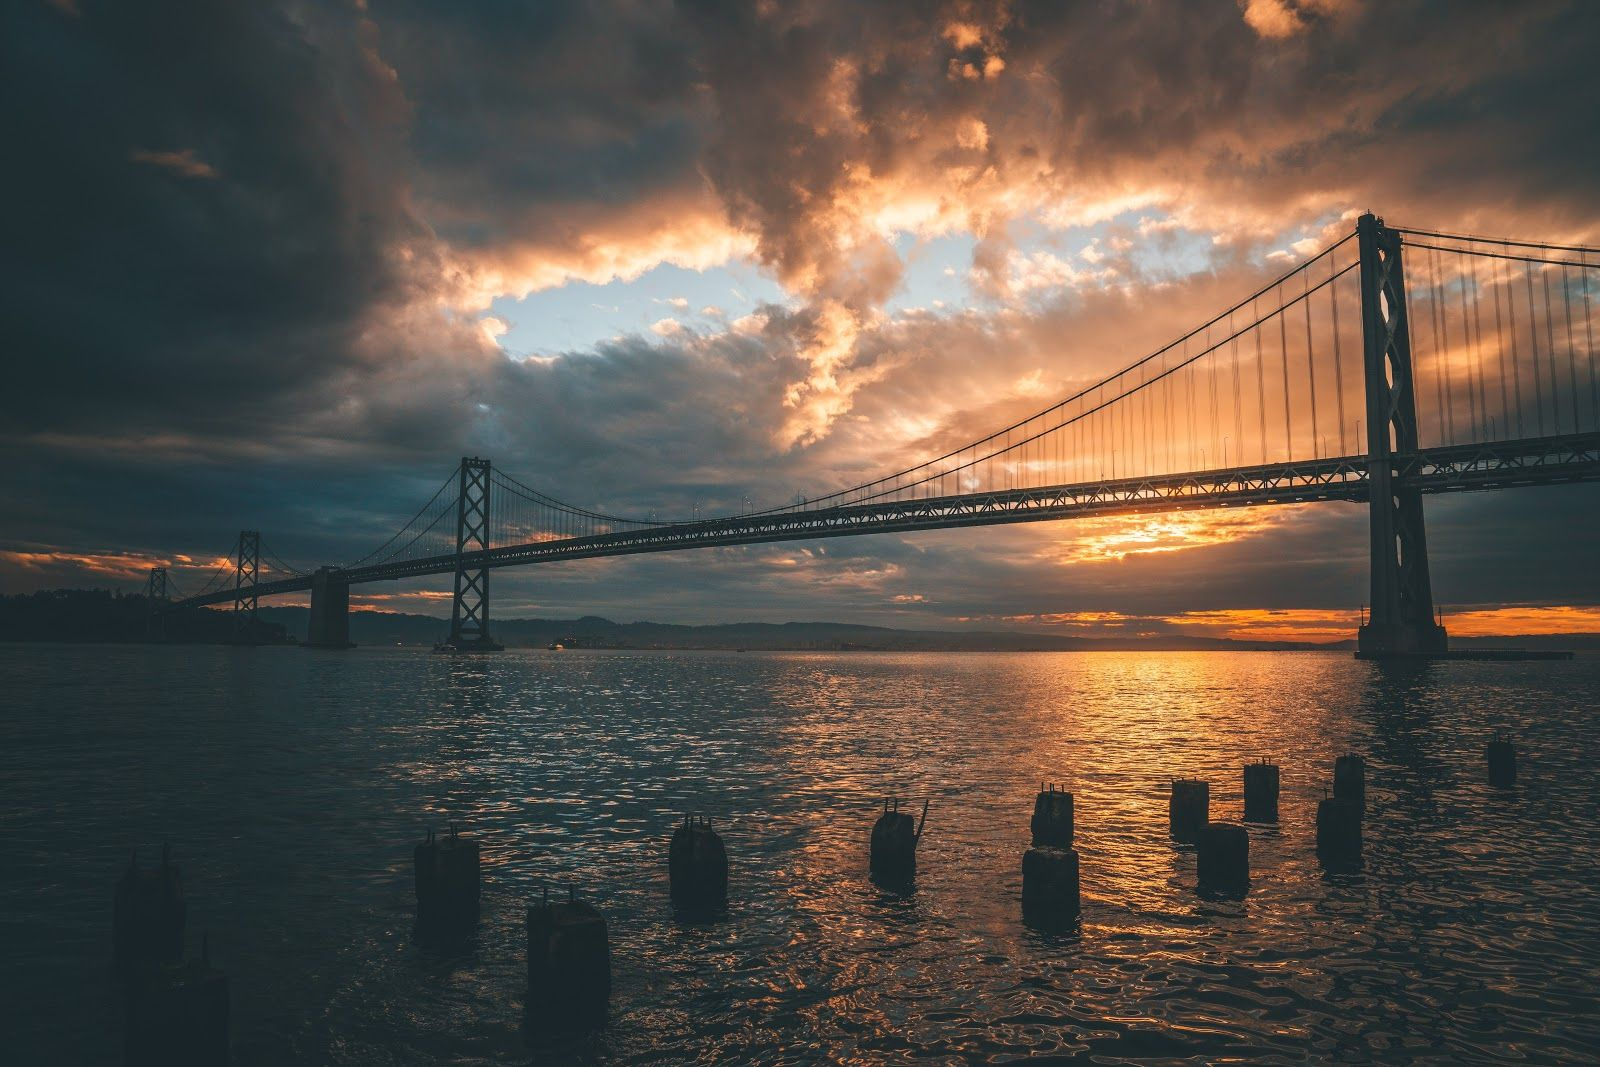 4k Wallpaper Architecture Silhouette Of Golden Gate Bridge During Golden Hour Laptop Wallpaper Vape Pictures Background Images